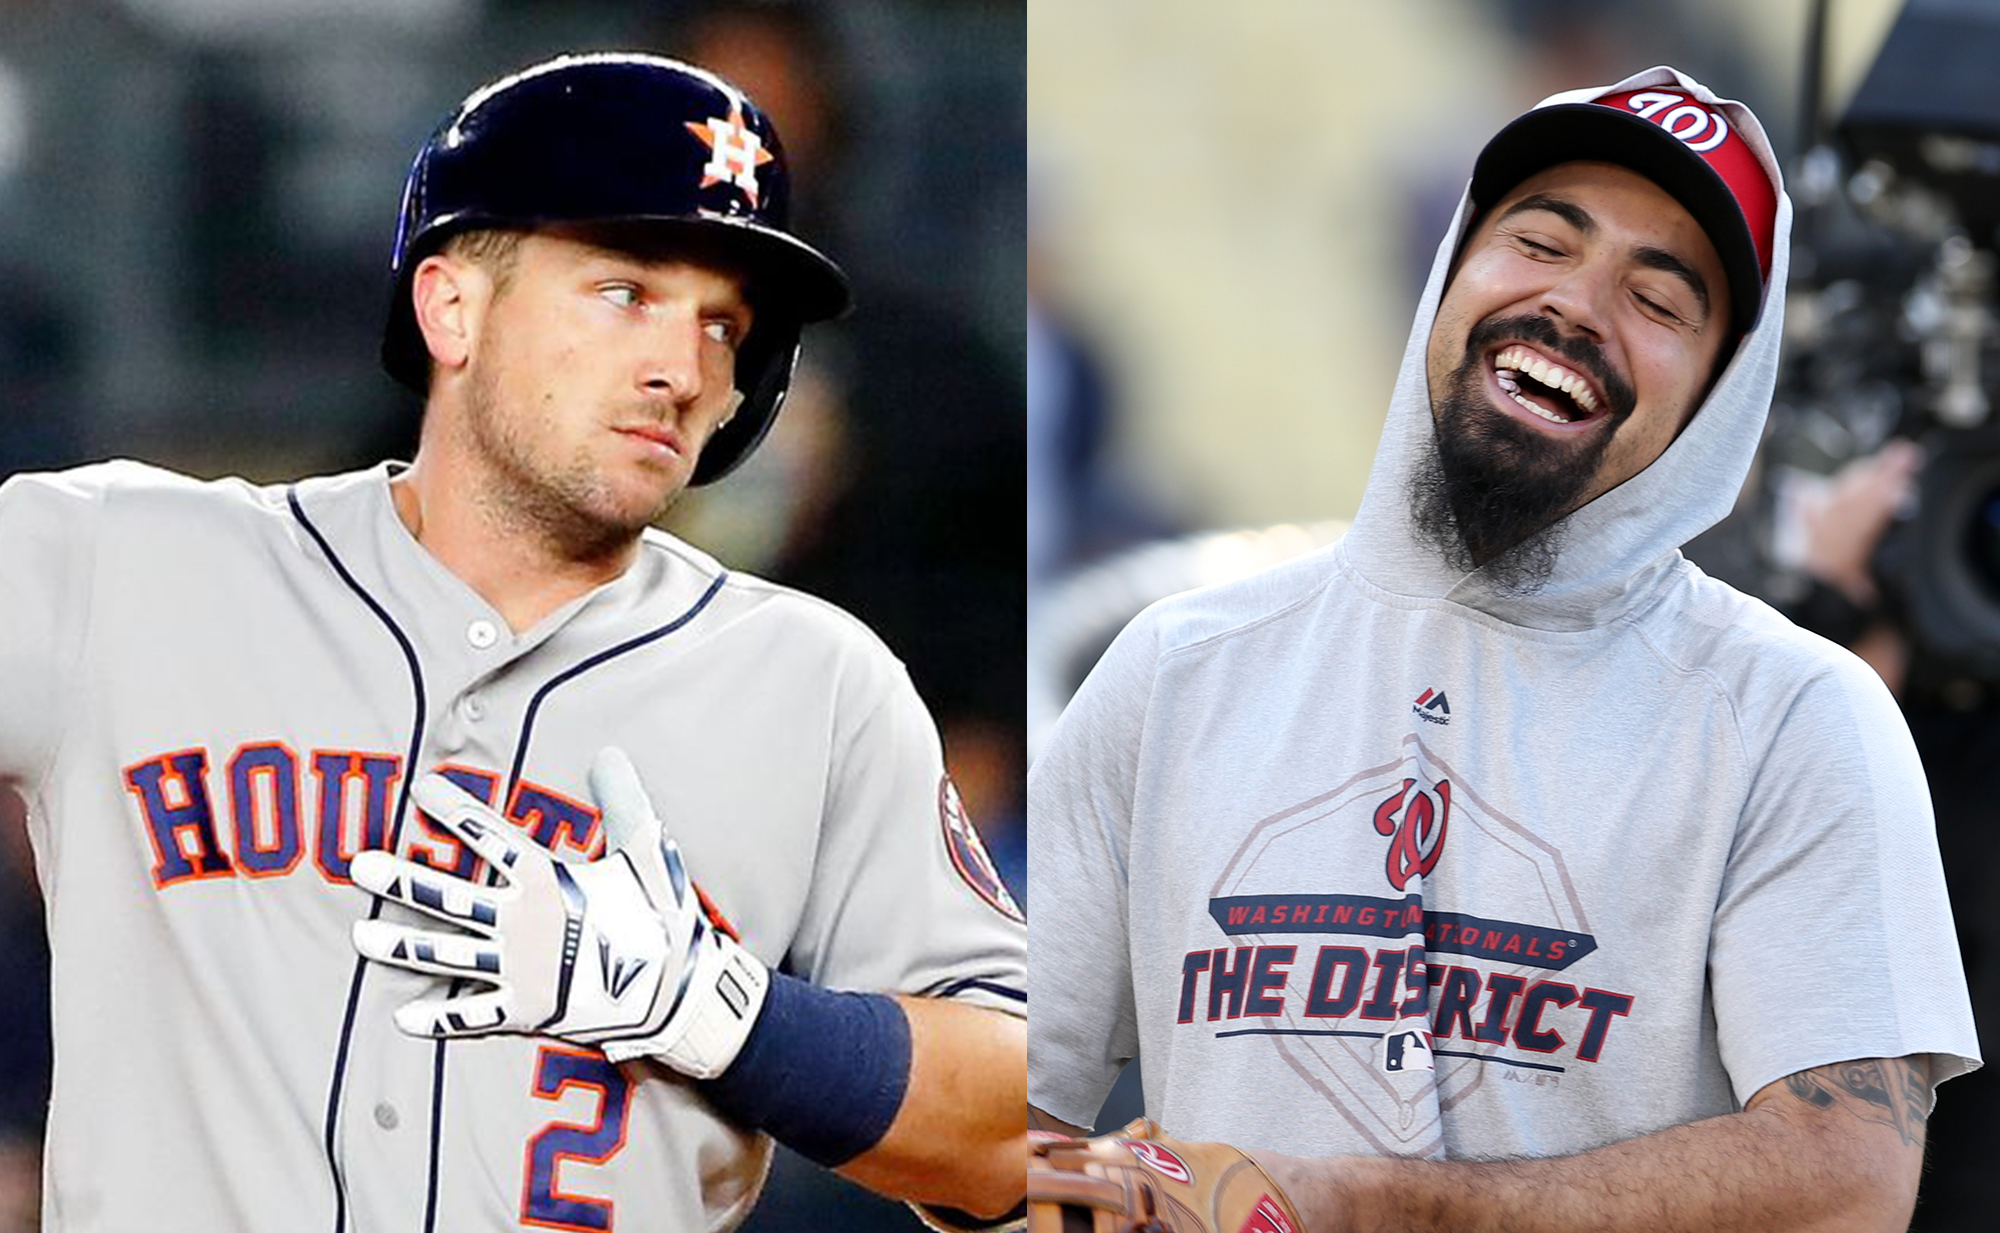 Alex Bregman and Anthony Rendon give us the best third base World Series matchup in a long long time, so here are two pictures of them smiling.